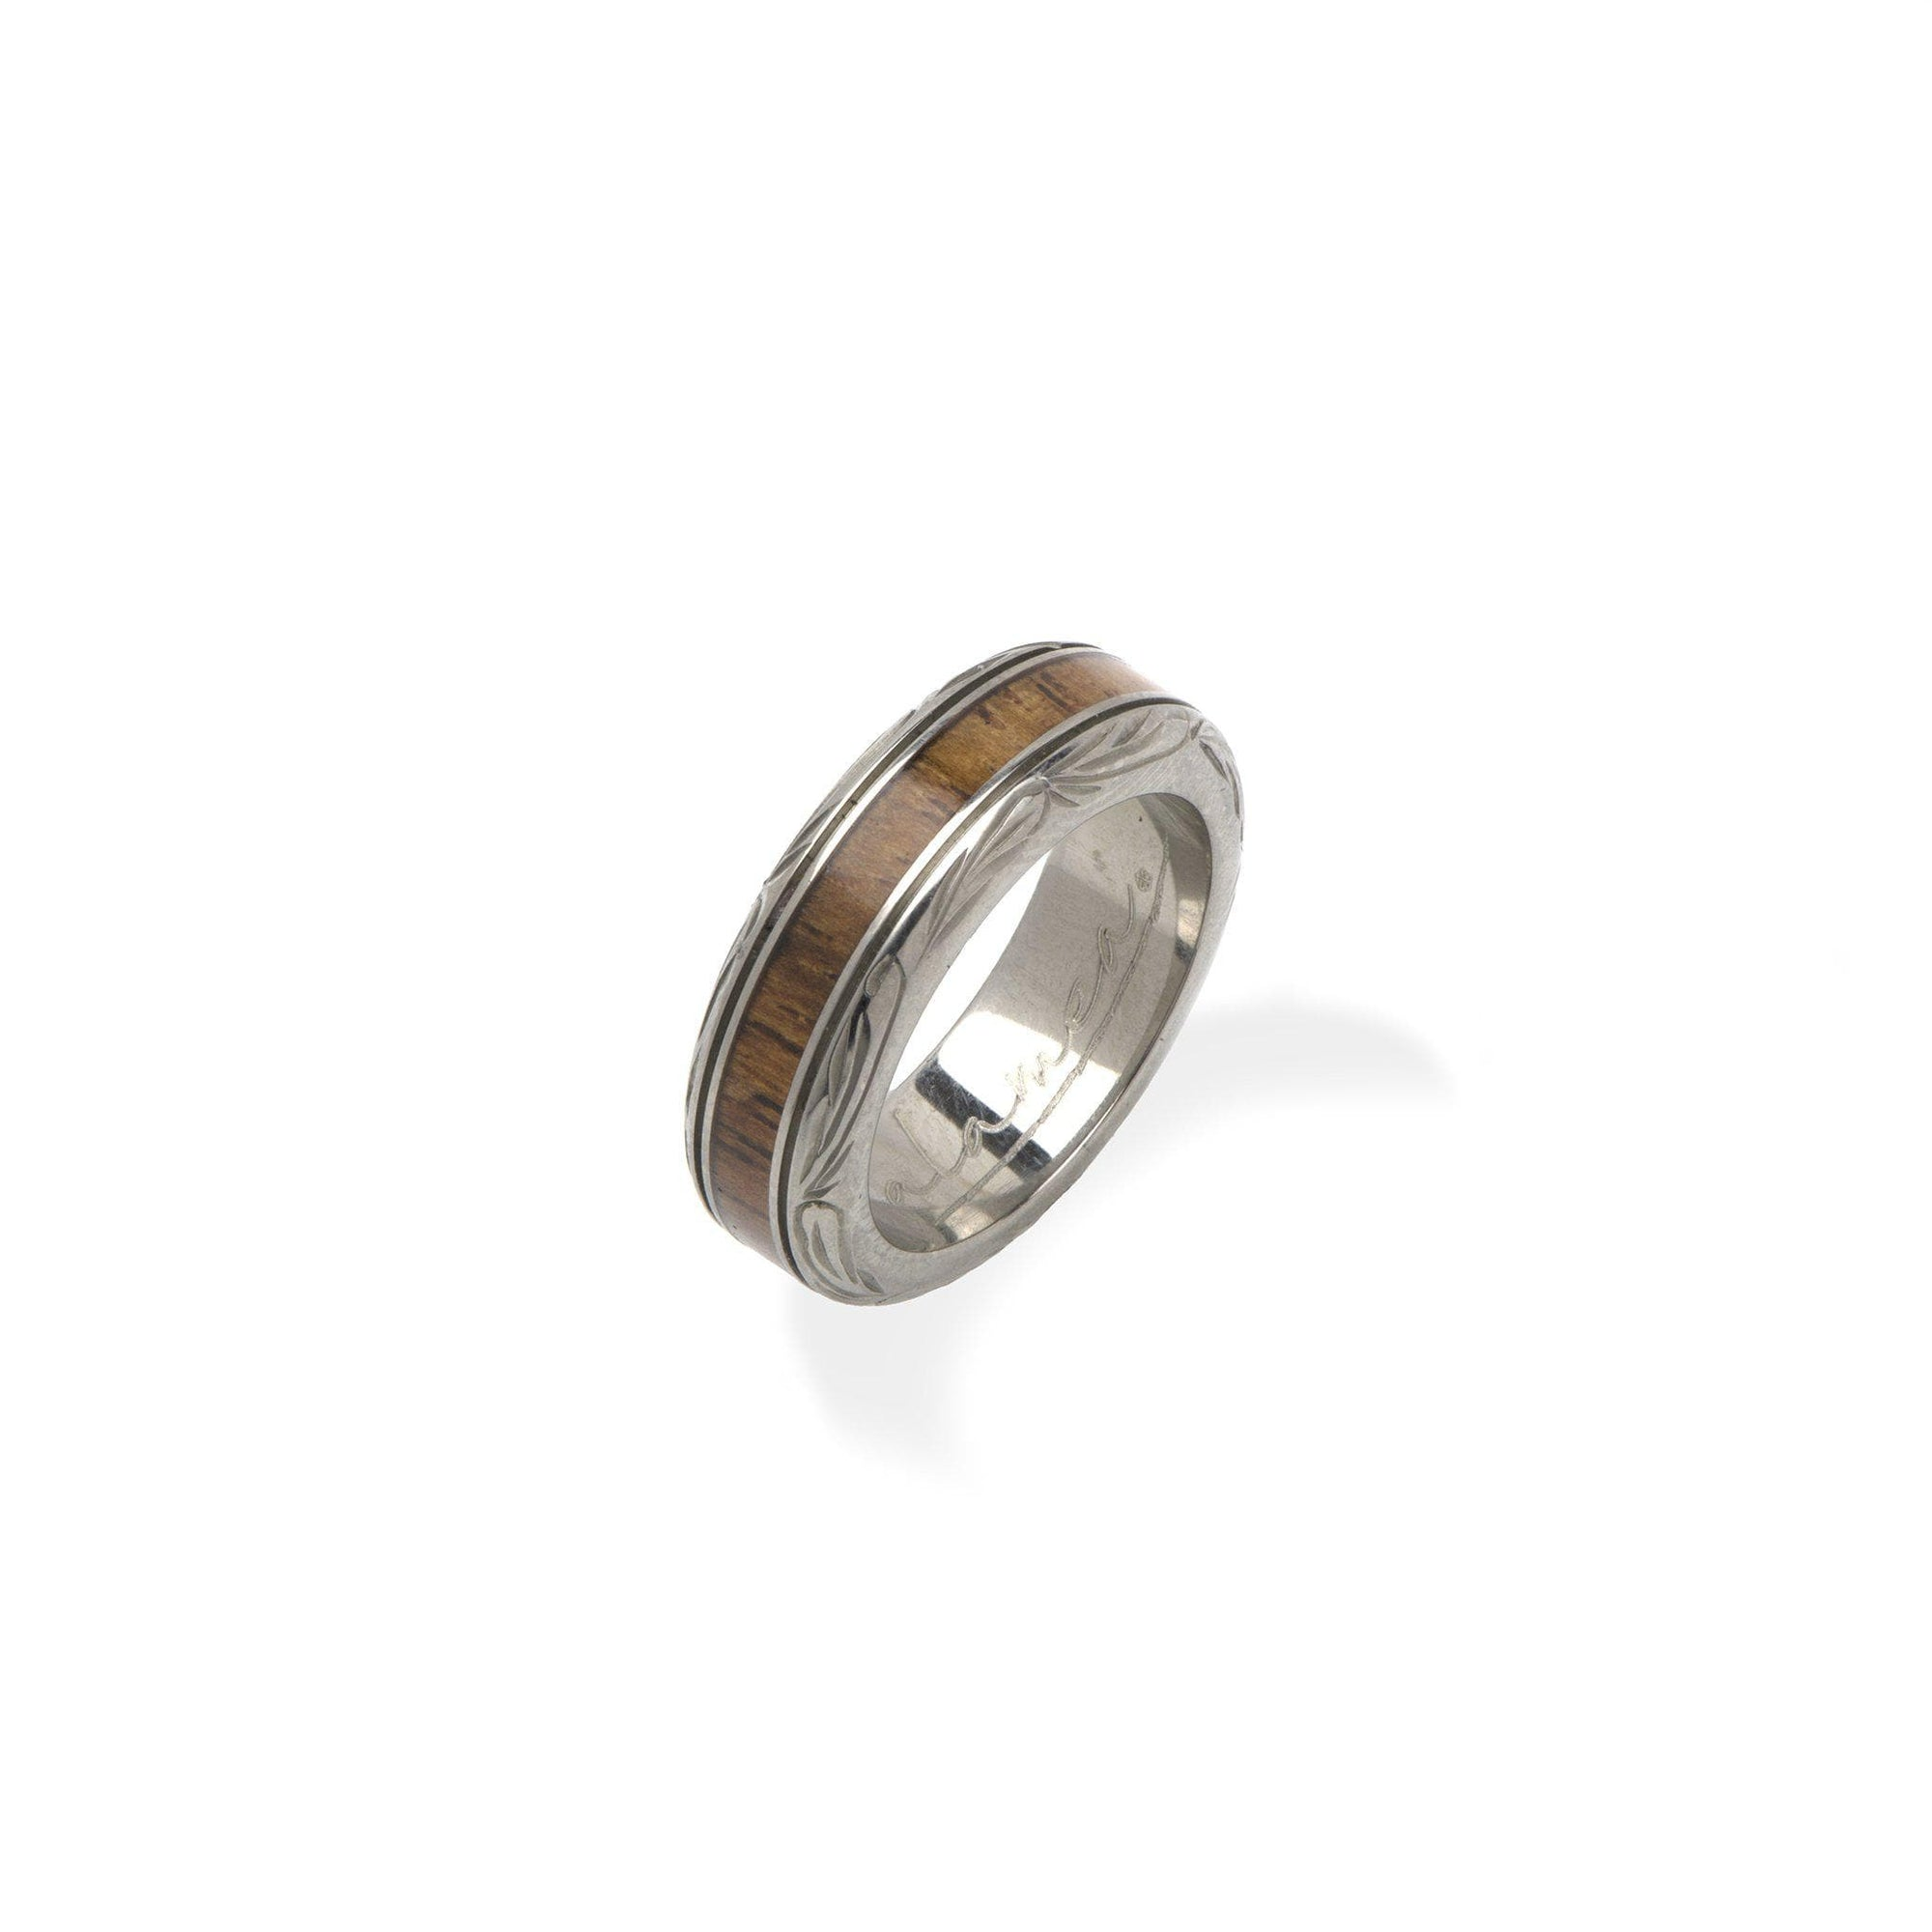 Koa Ring in Titanium - Size 5-[SKU]